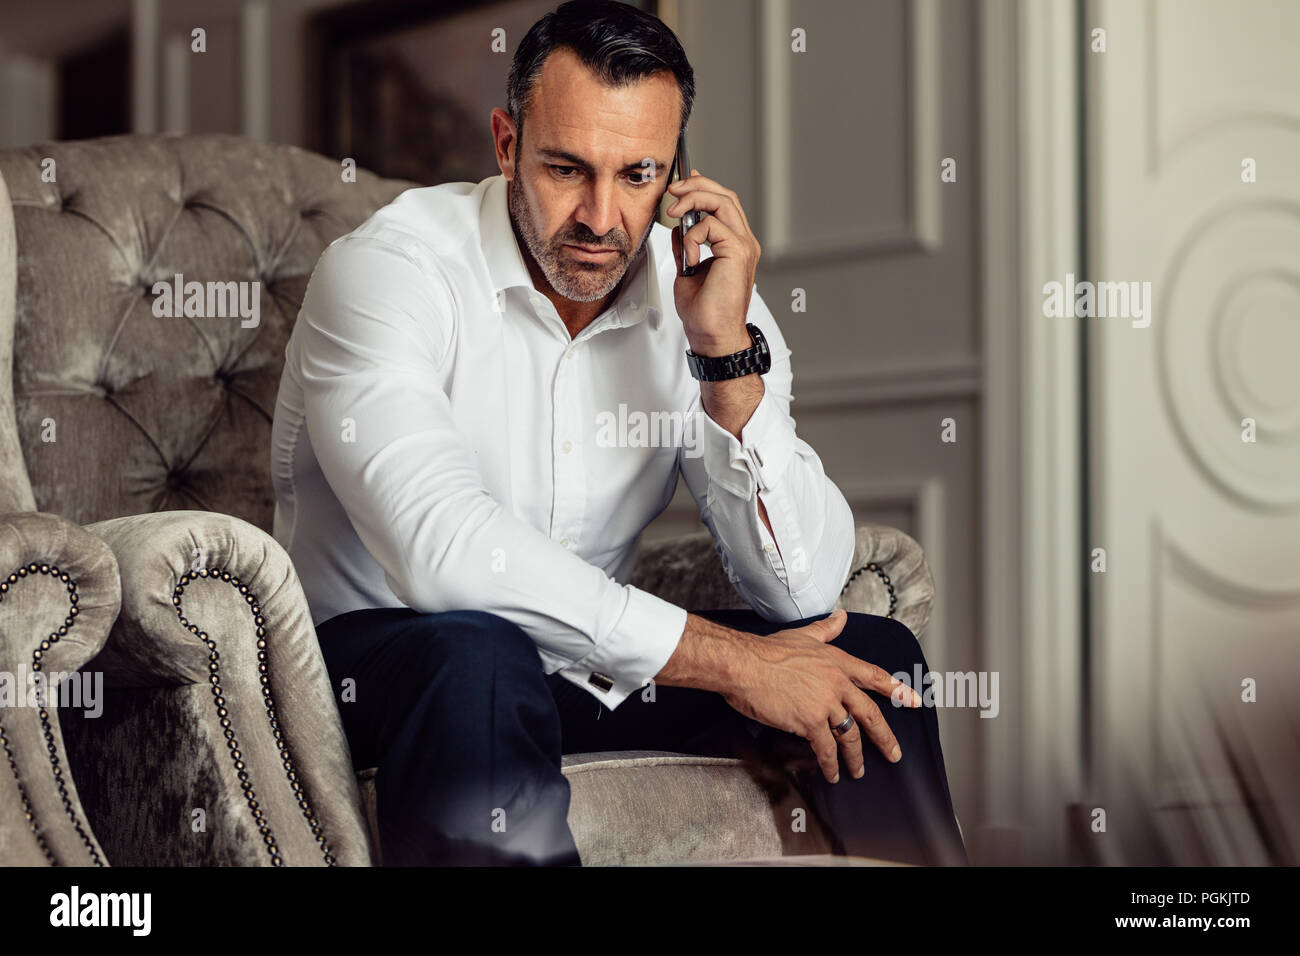 Businessman making a phone call after arriving in the hotel room. Man in formal wear sitting on chair and talking on smartphone. - Stock Image